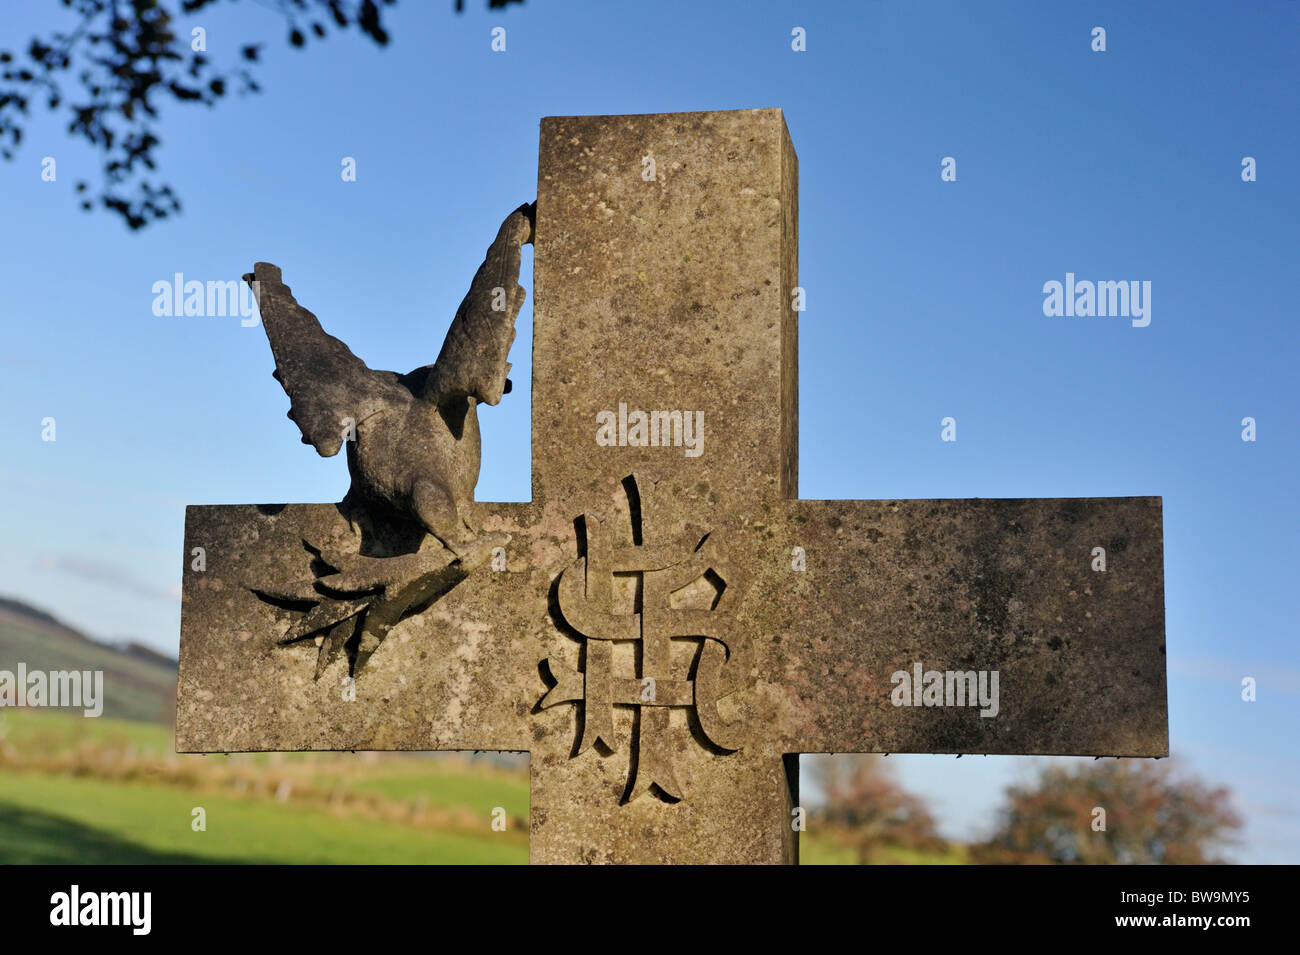 Memorial Cross With Ihs Symbol Dove And Olive Branch Church Of